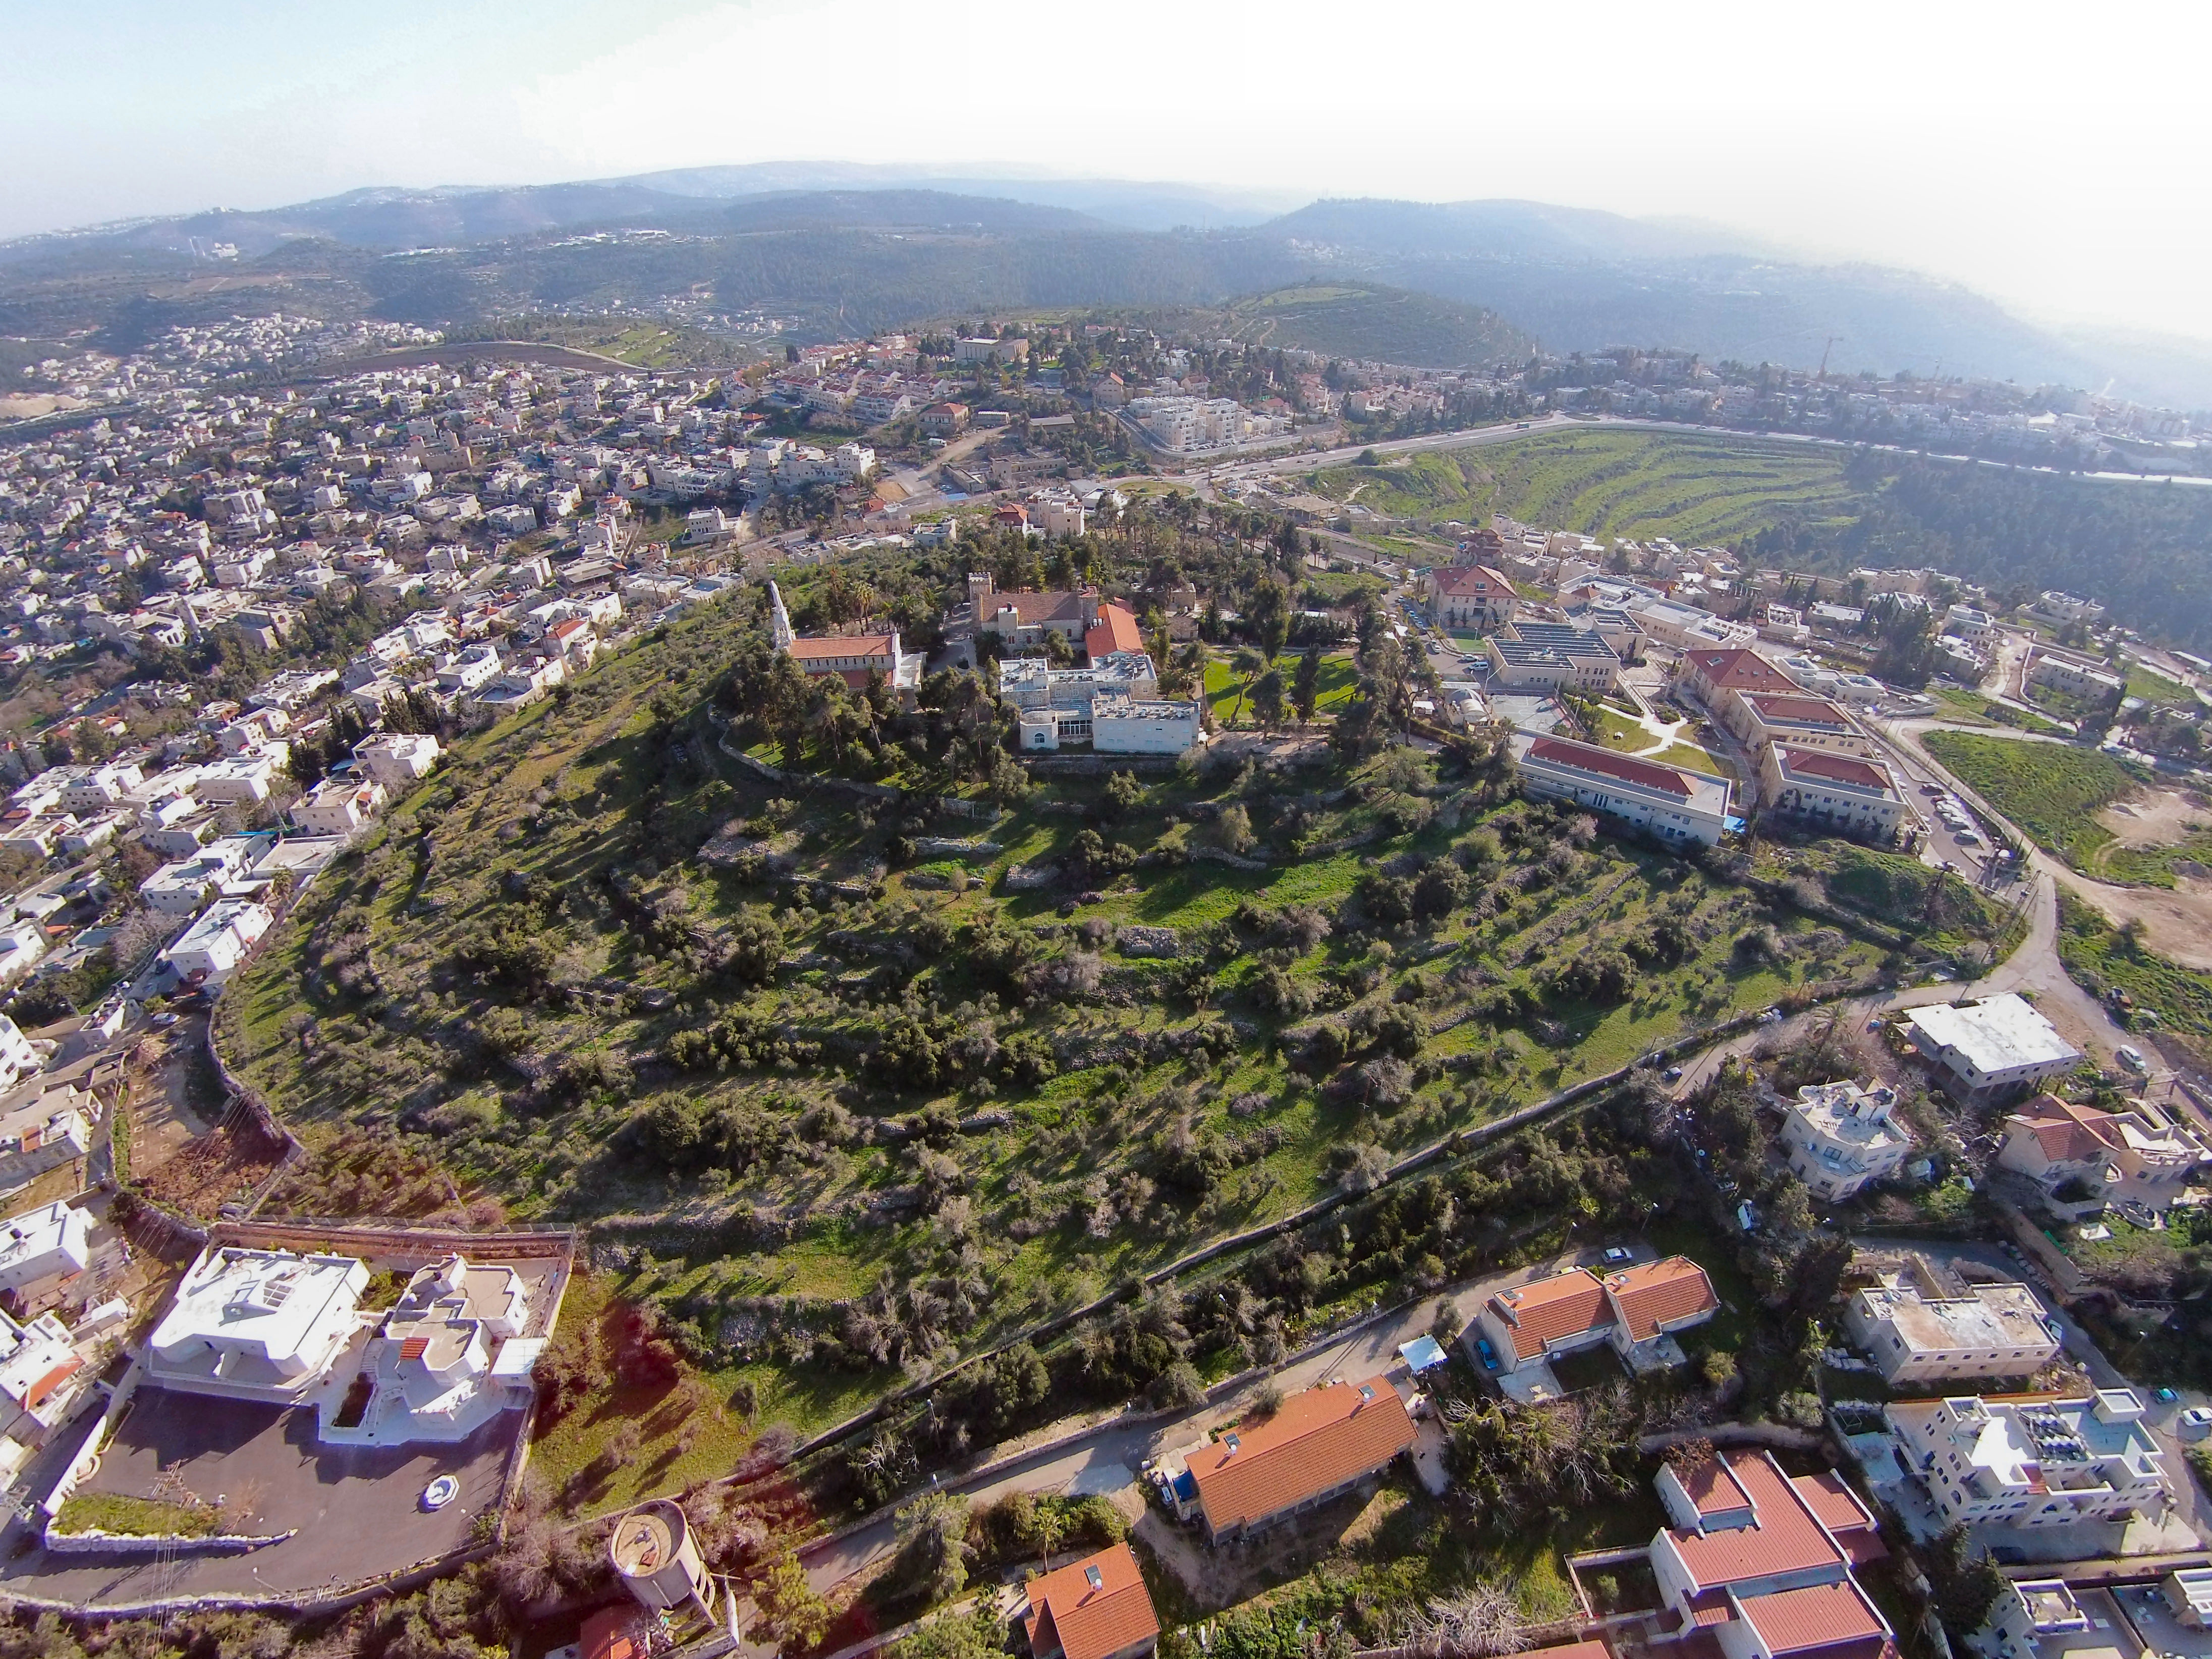 The Biblical town of Emmaus, which is linked to Jesus' resurrection and the Ark of the Covenant, may have b...